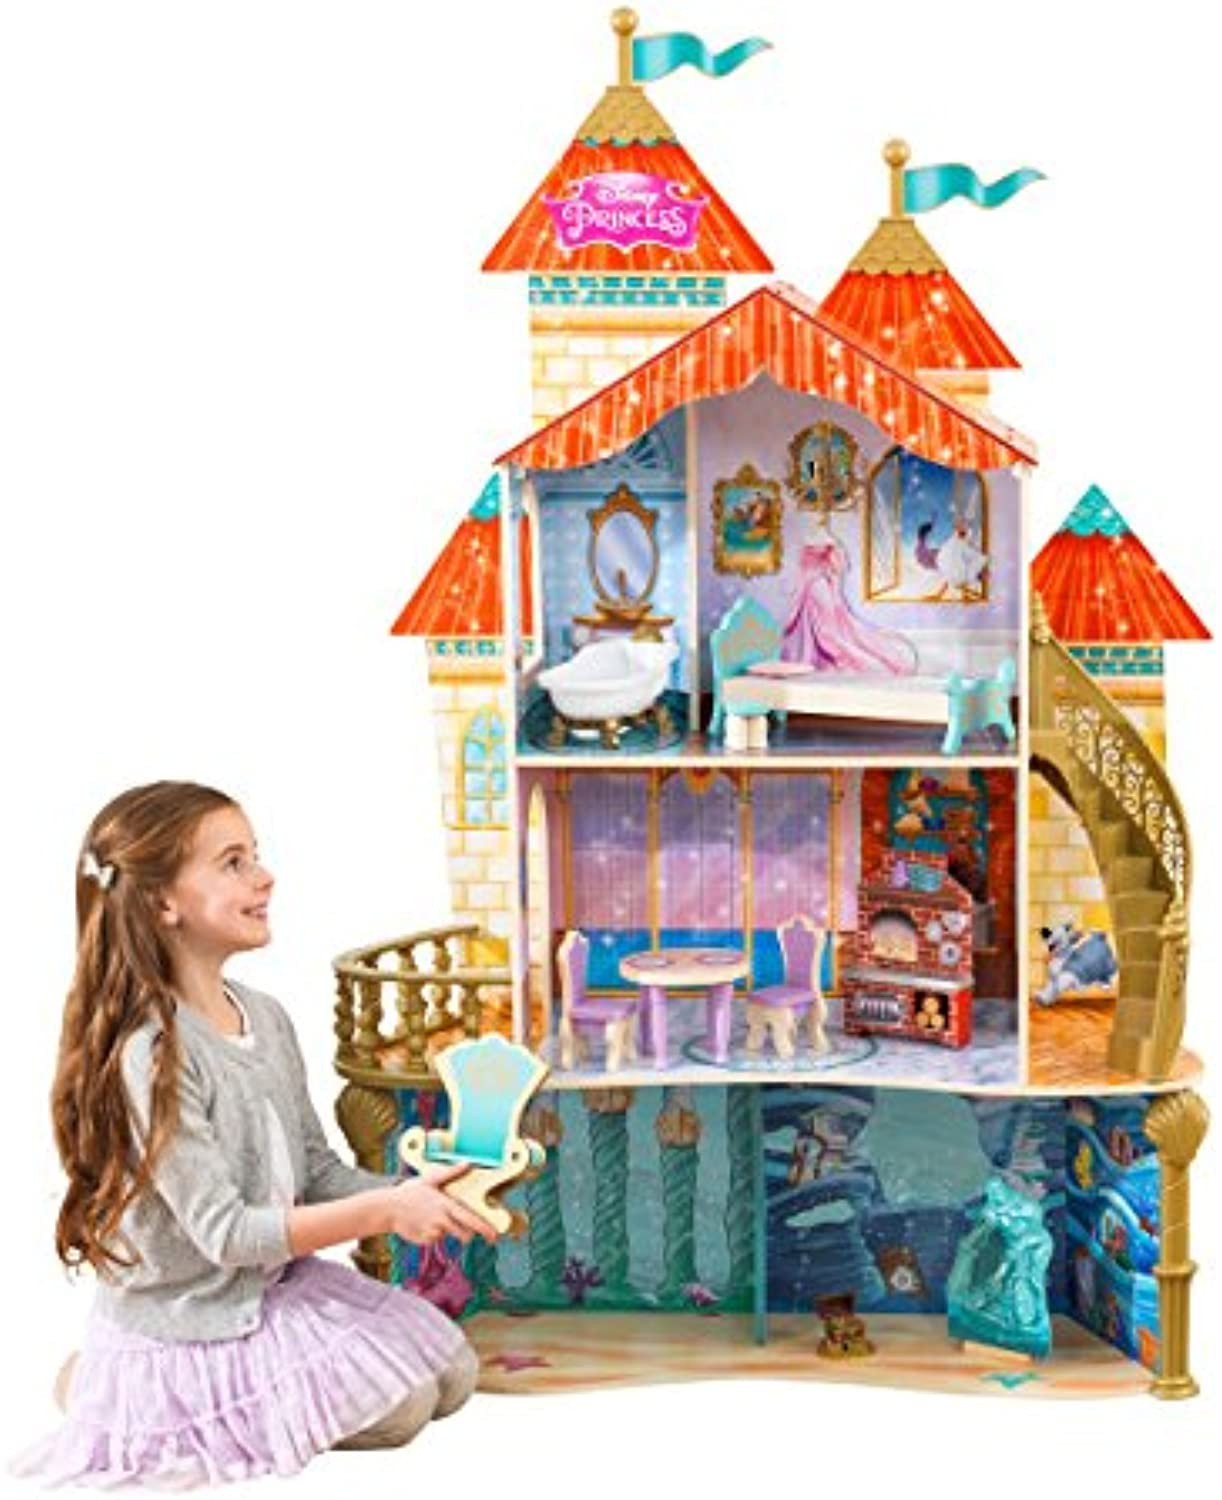 KidKraft 65939 Disney Princess Ariel Land to Sea Castle Wooden Dolls House with furniture and accessories included, 3 storey play set for 30 cm   12 inch dolls